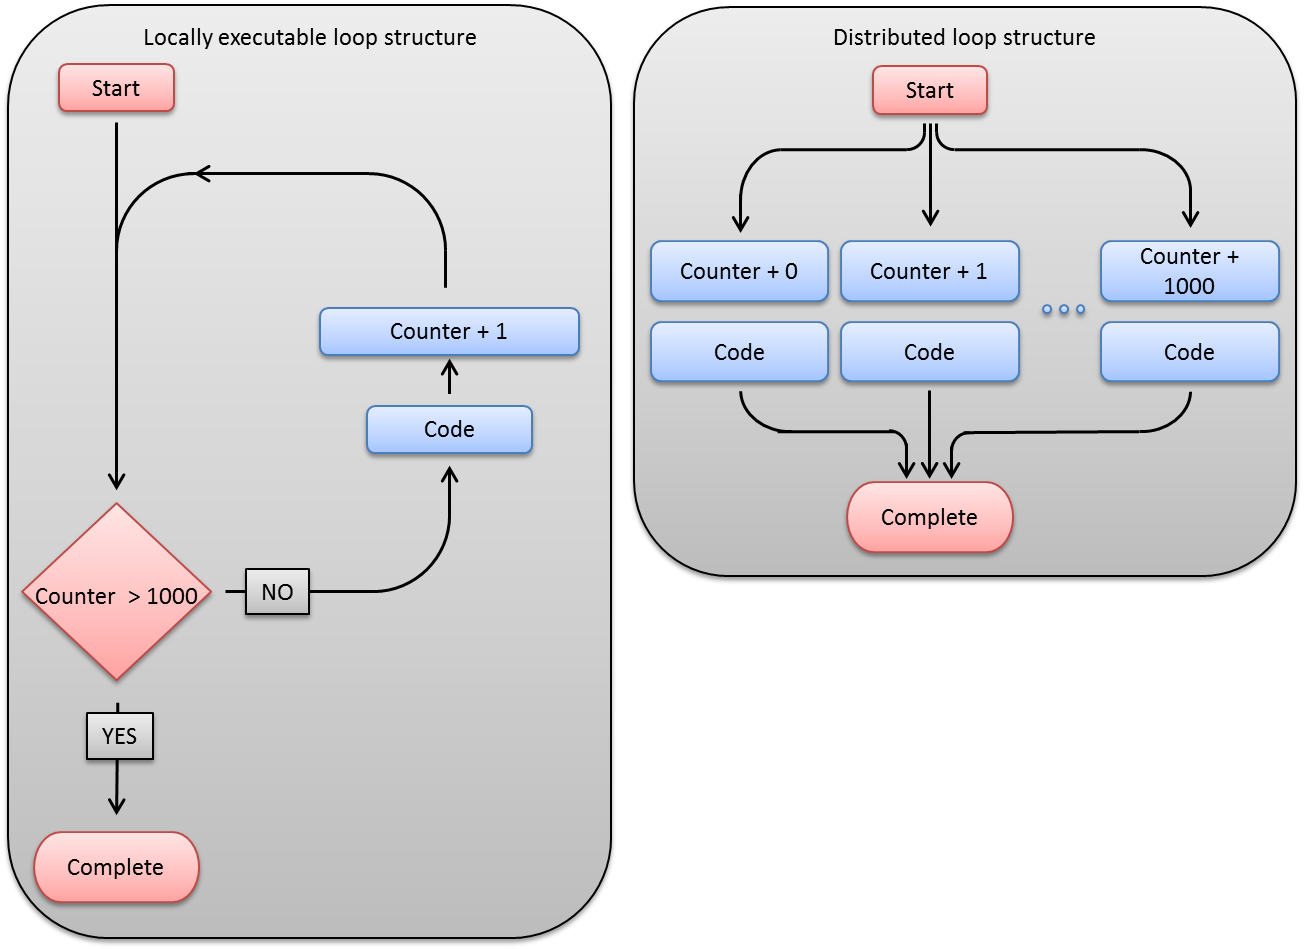 Introduction To Techila Distributed Computing Engine Process Flow Diagram Loop Differences In Computational Between A Local And Structure The Locally Executable Has An Iterative Nature